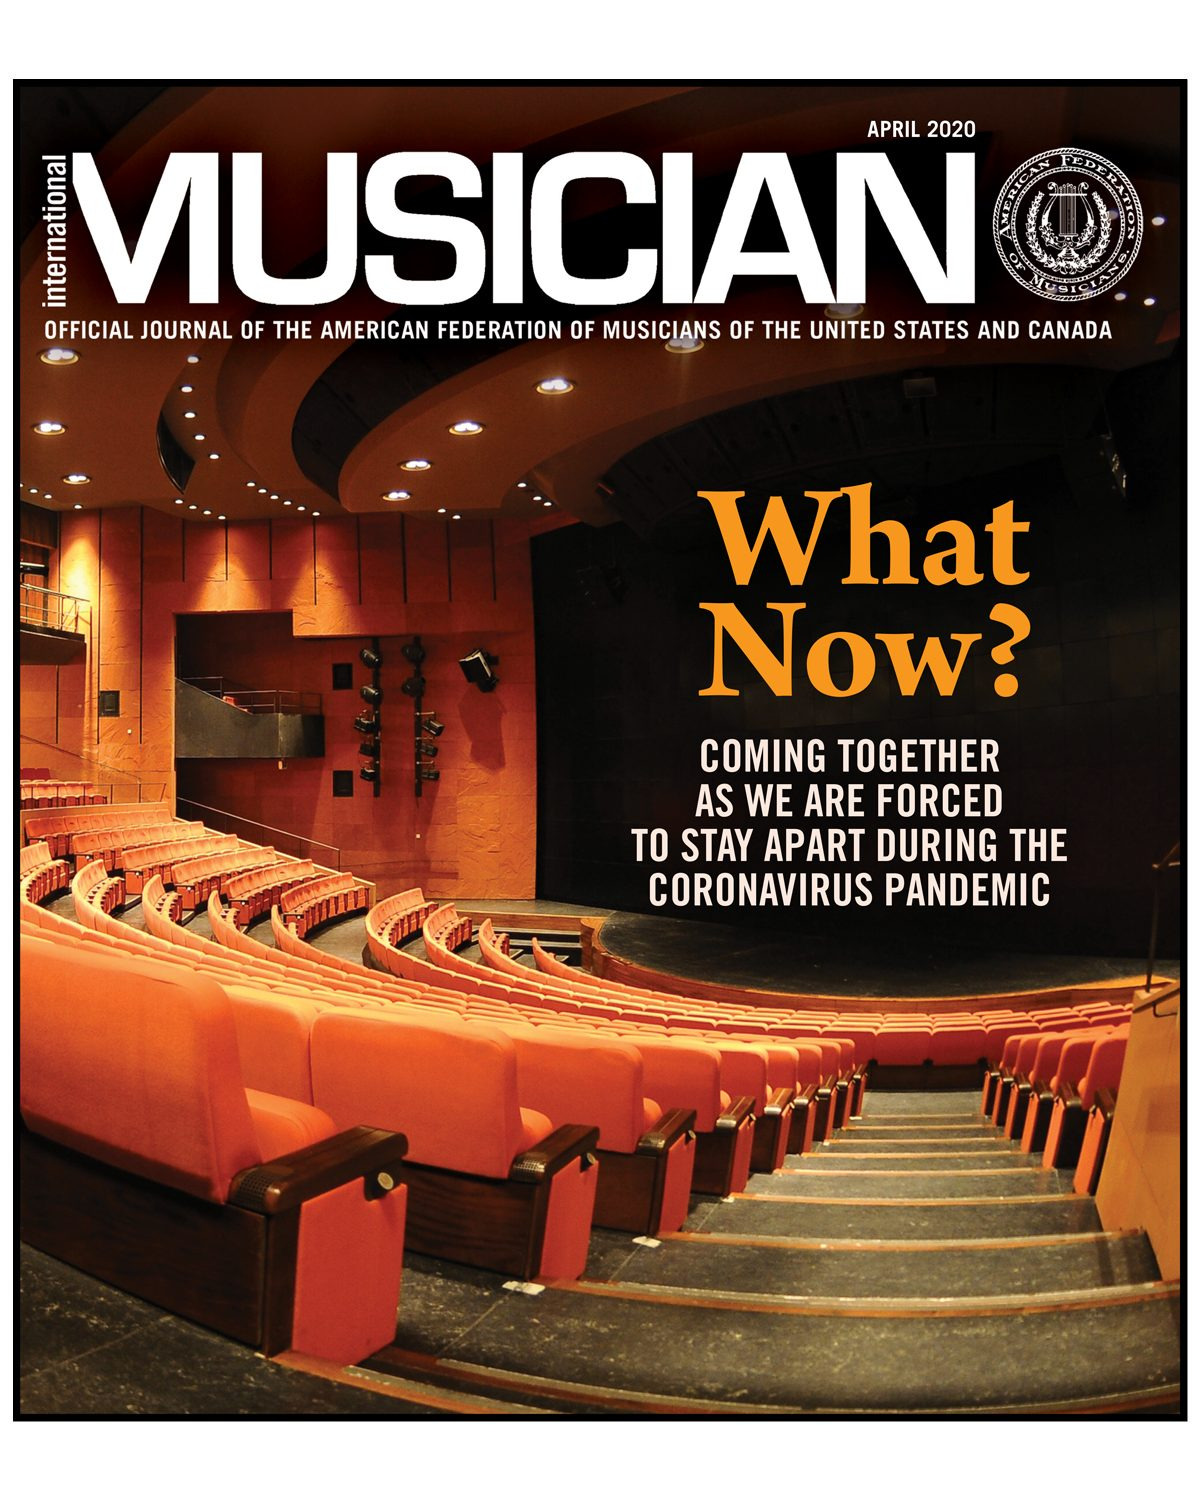 V118-04- April 2020 - International Musician Magazine